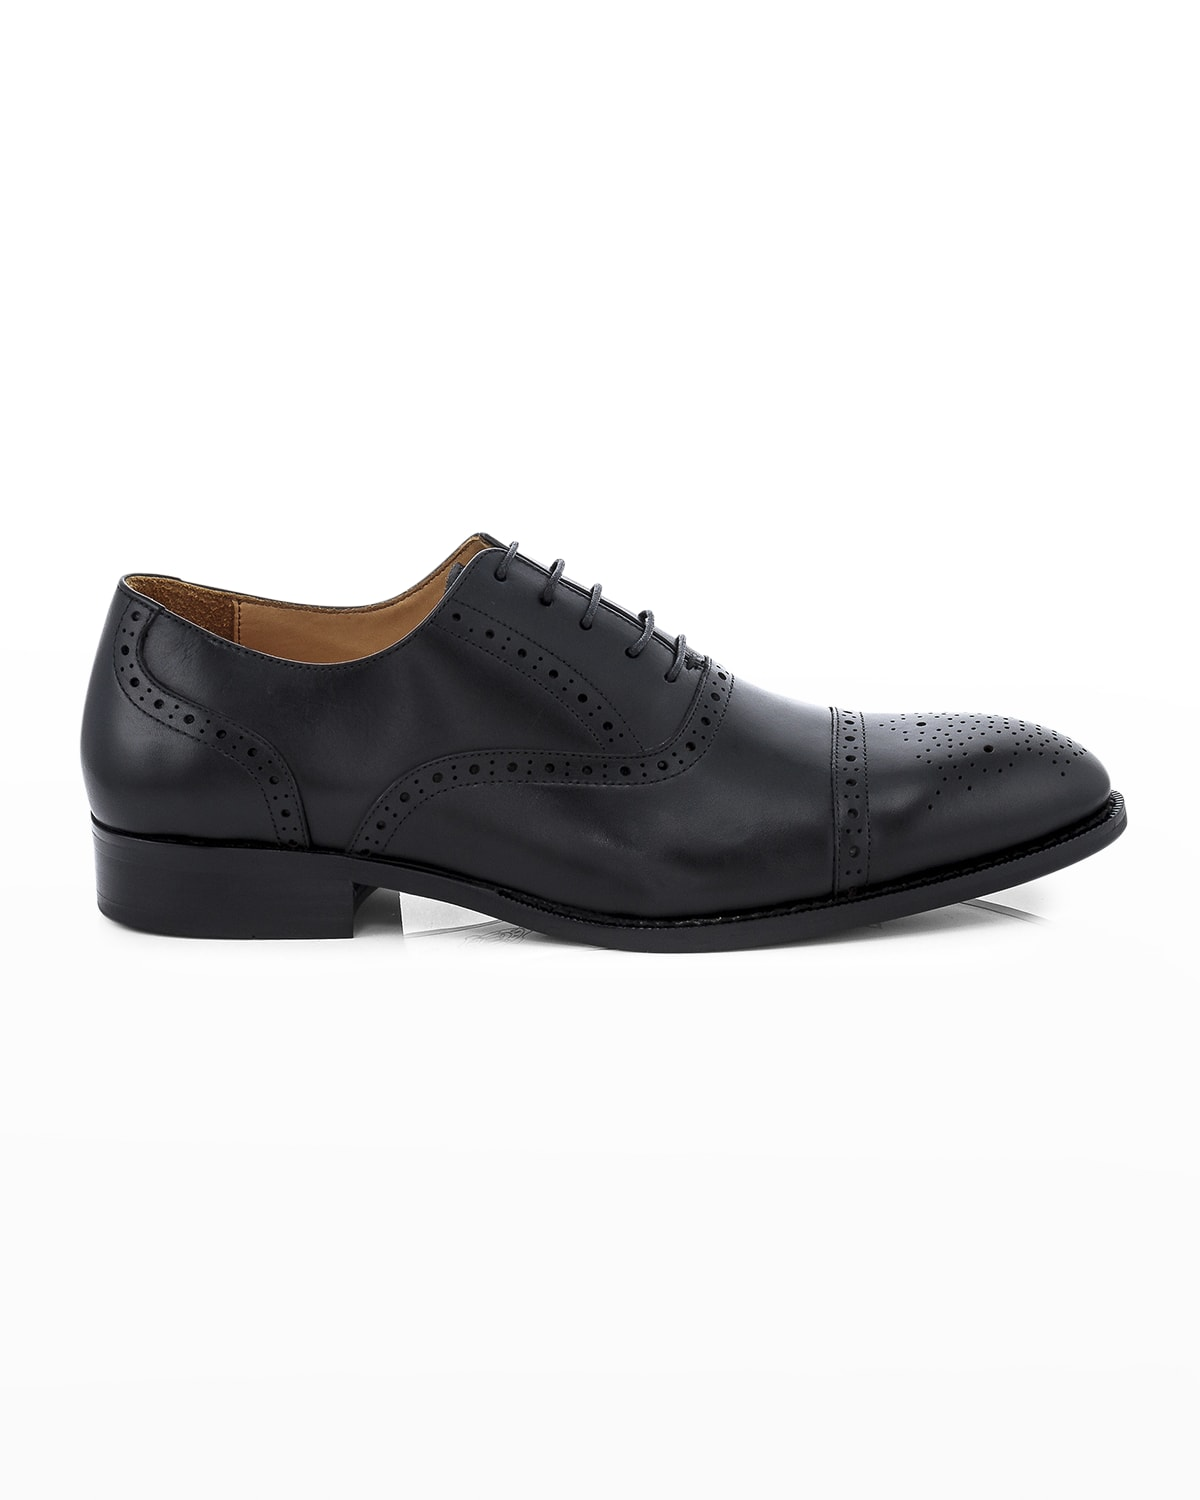 Men's Jared Brogue Leather Oxford Shoes